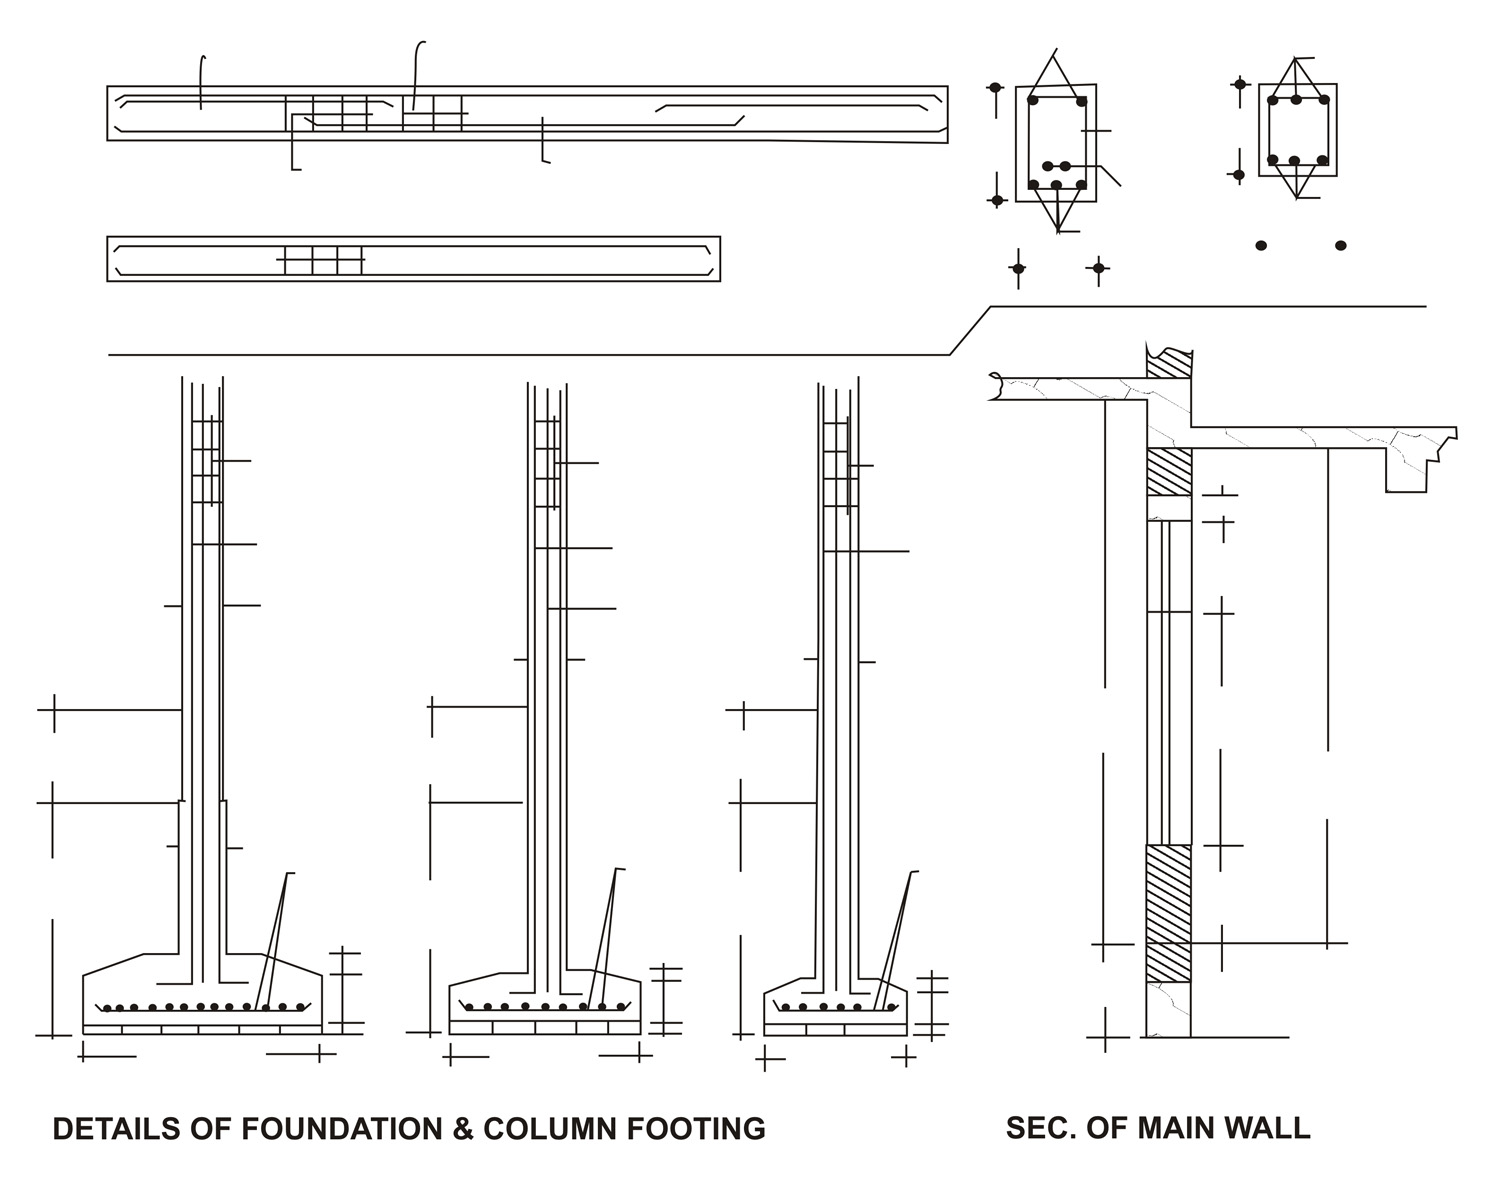 2Details of Foundation & Column Footing